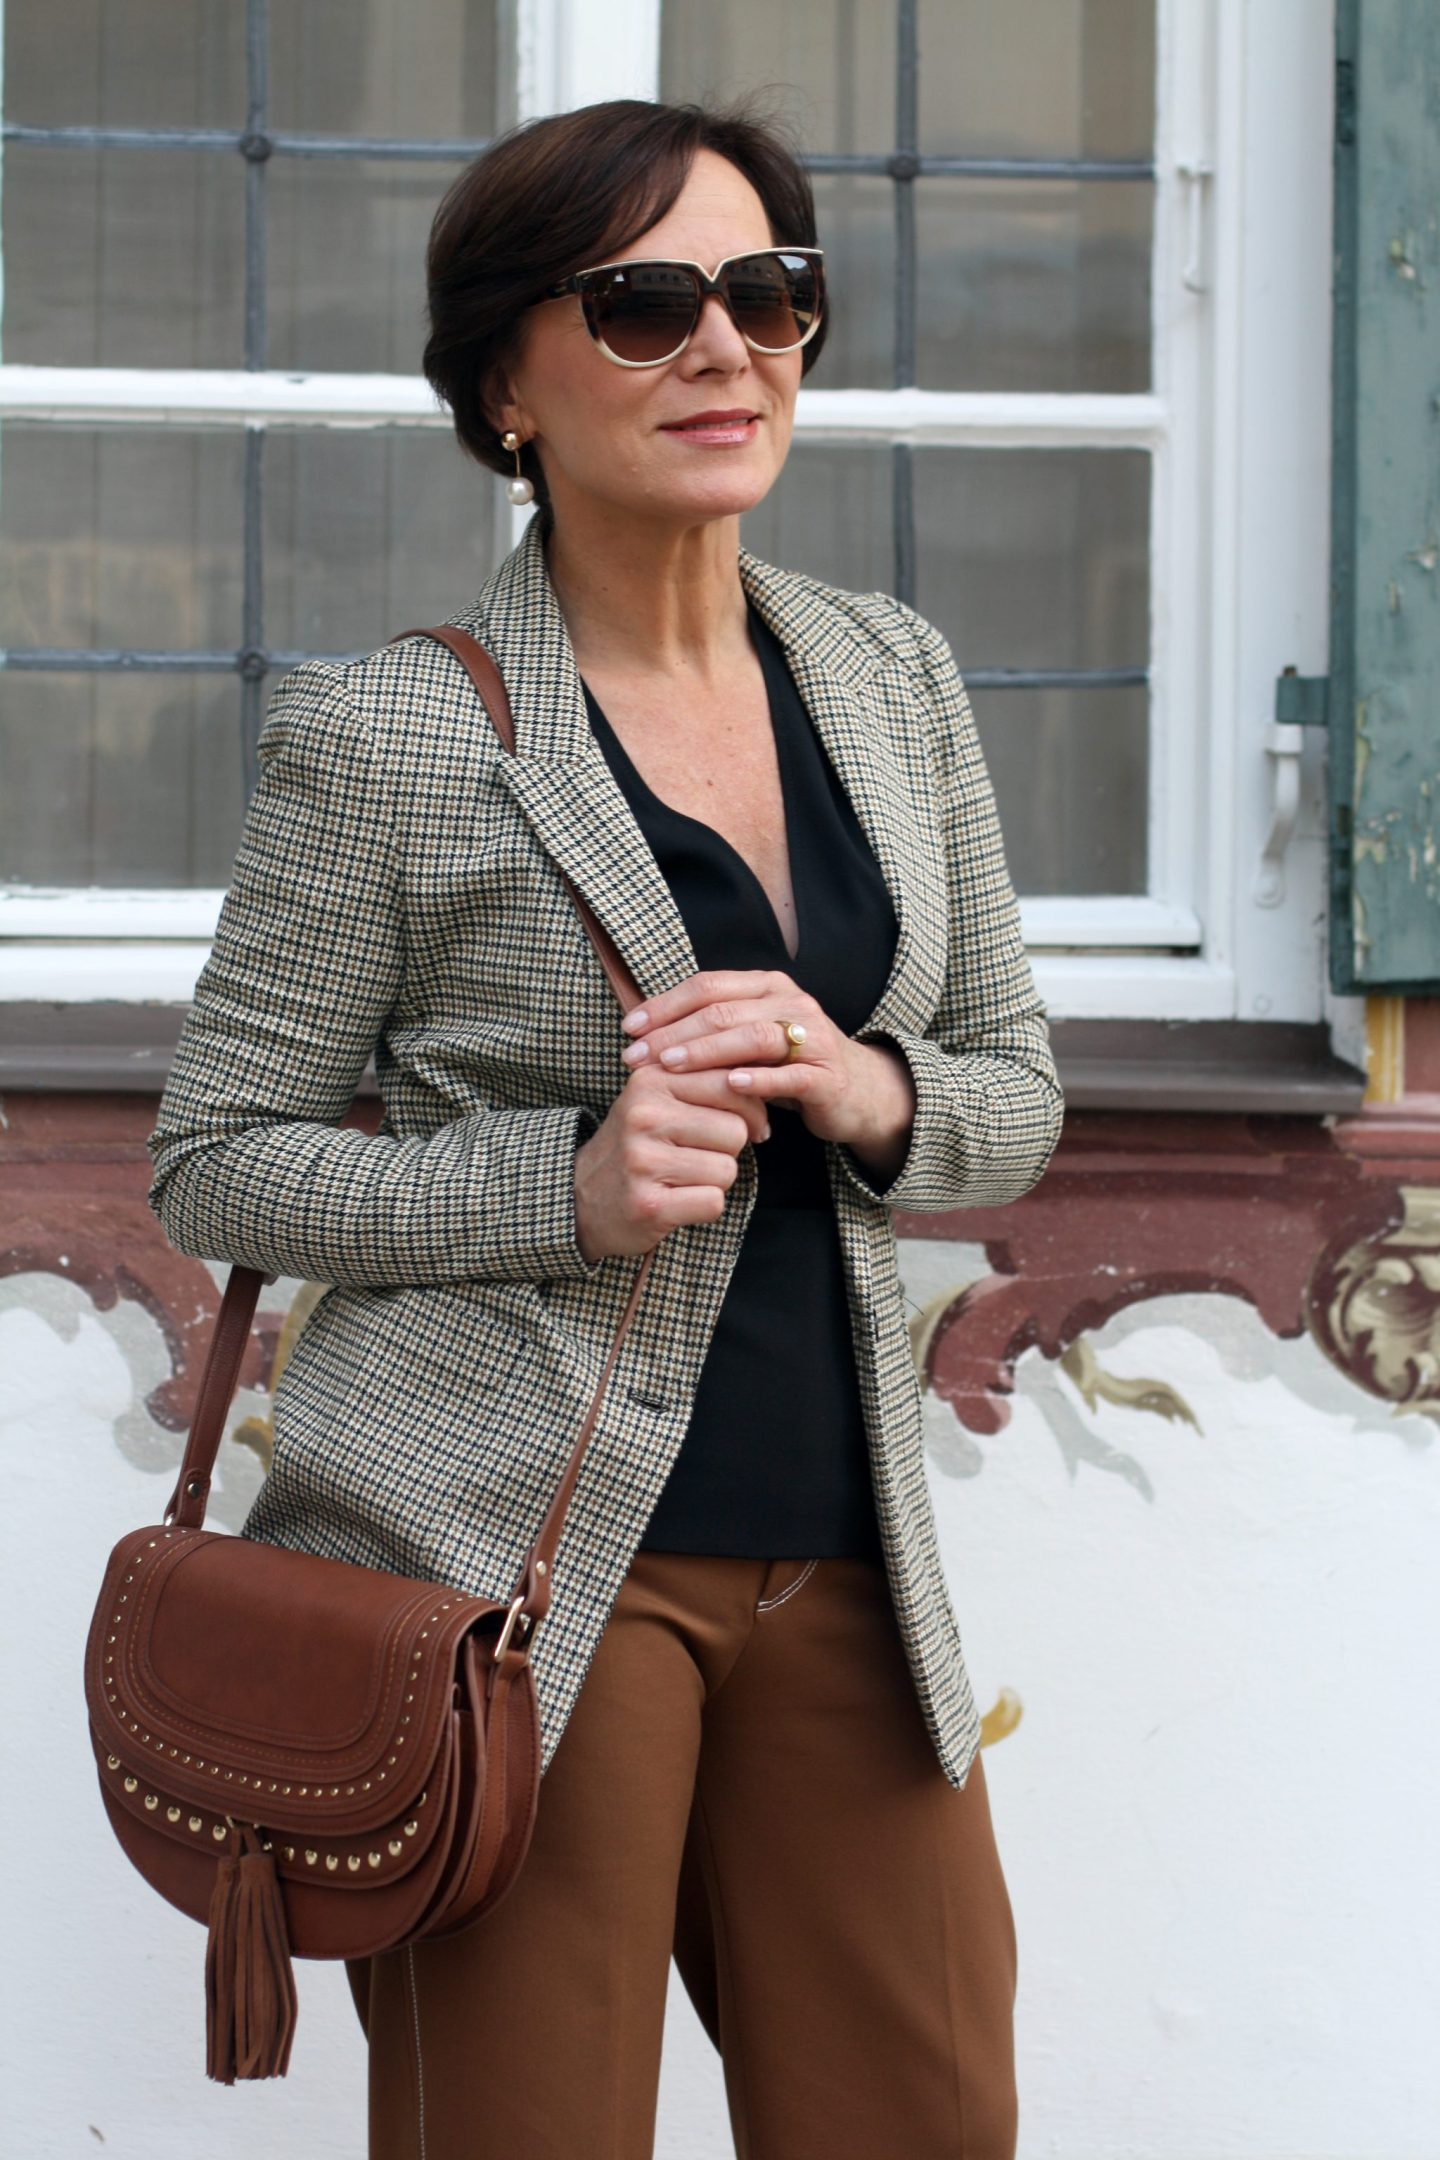 Herbsttrend 2018 Glencheck Blazer Culottes 50plus Blogger LadyofStyle